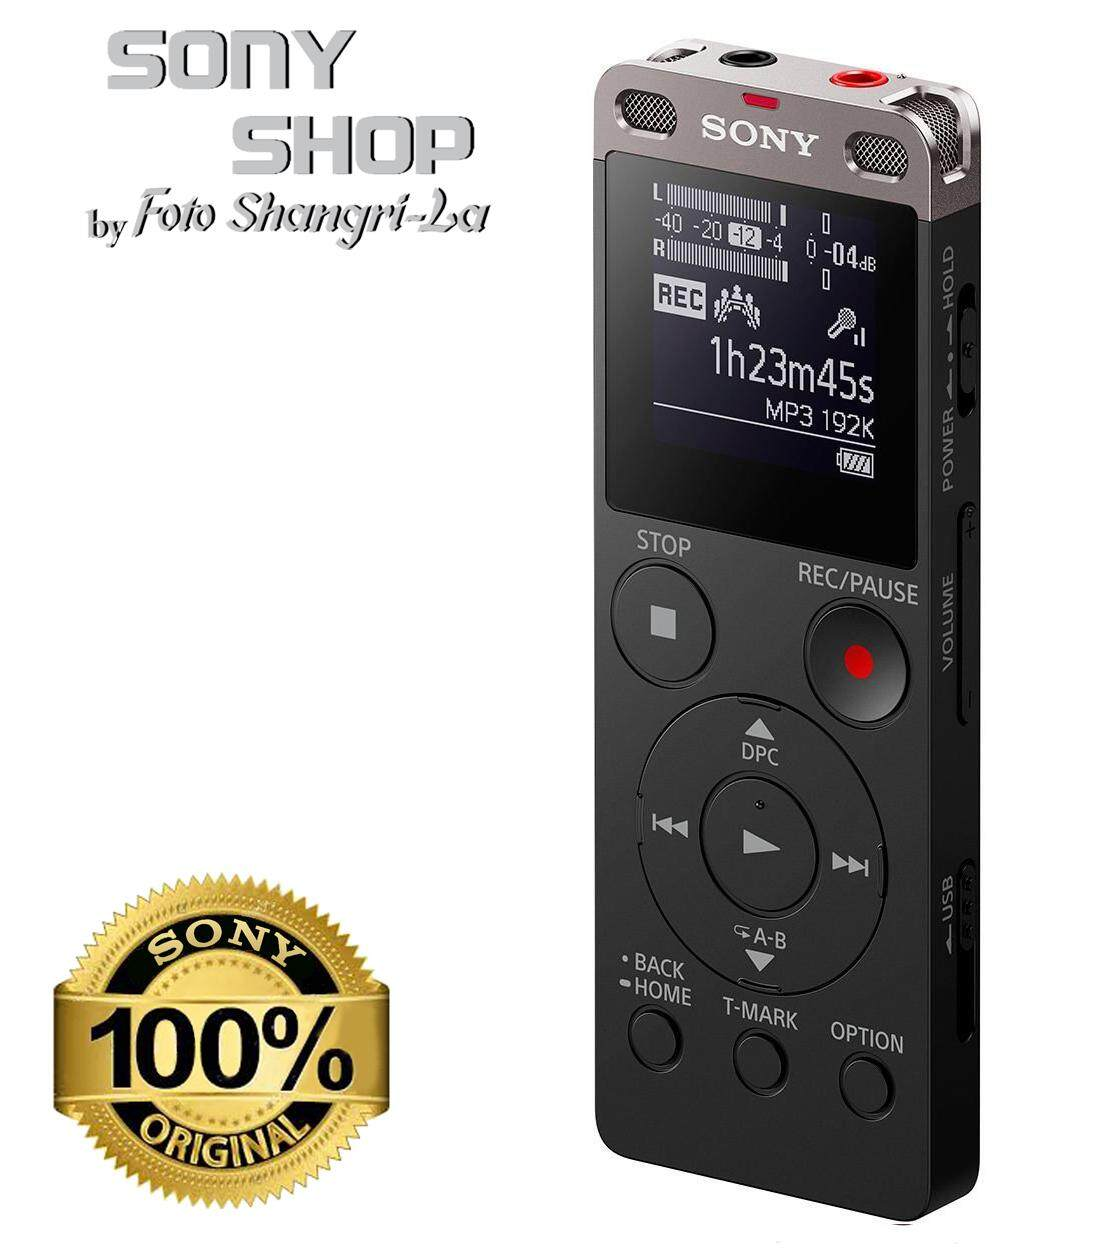 Sell Sony Digital Voice Cheapest Best Quality My Store Icd Tx800 Ultra Compact Recorder Myr 349